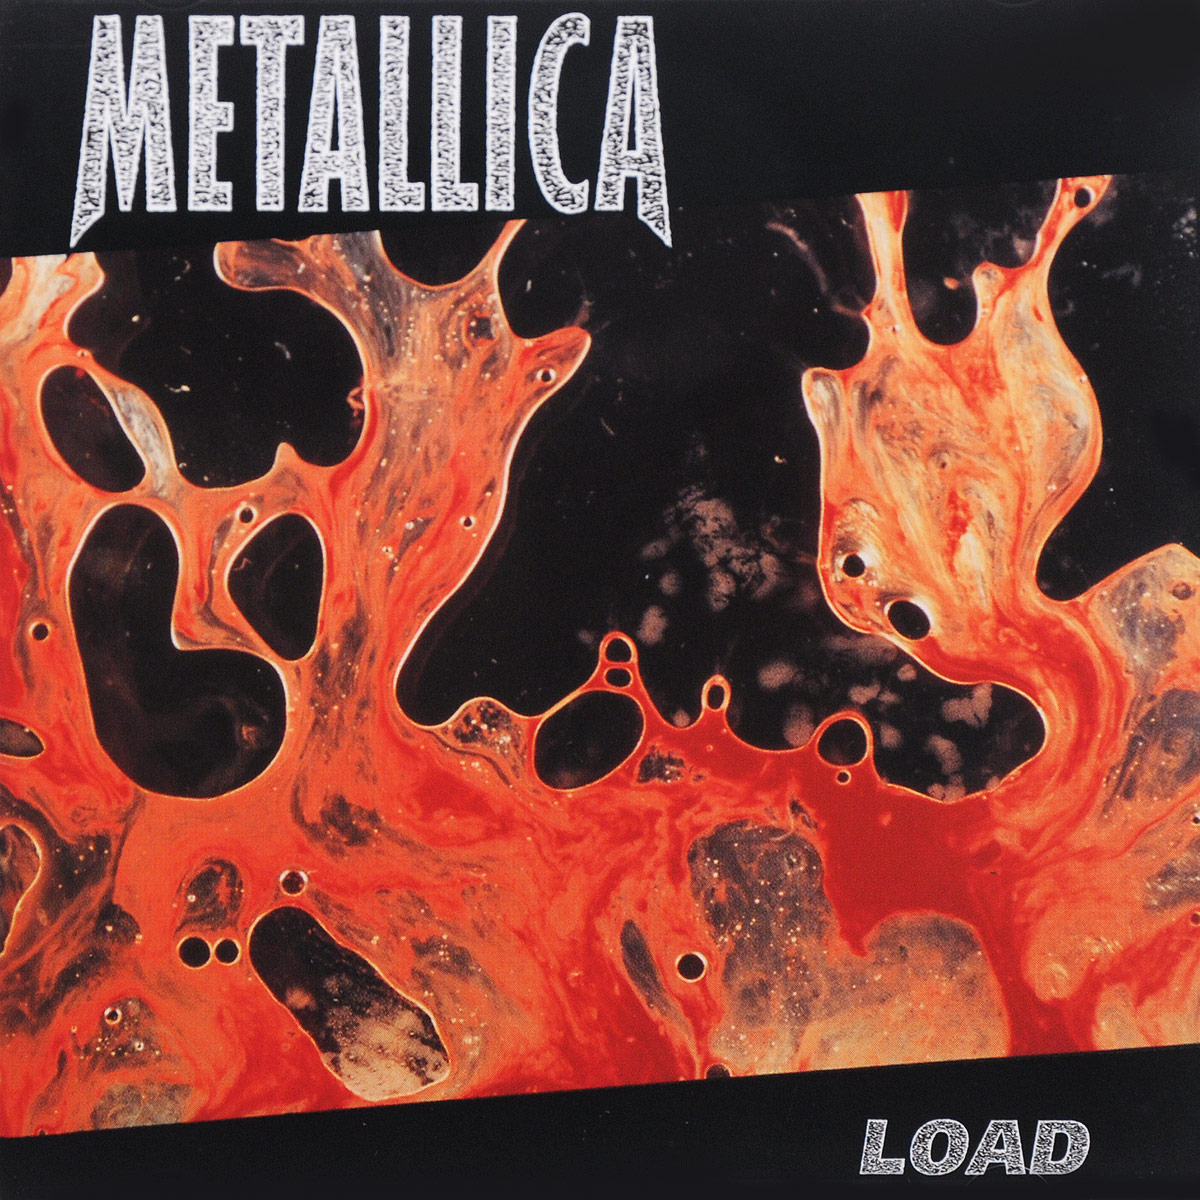 Metallica Metallica. Load metallica metallica monsters of rock broadcast moscow russia 1991